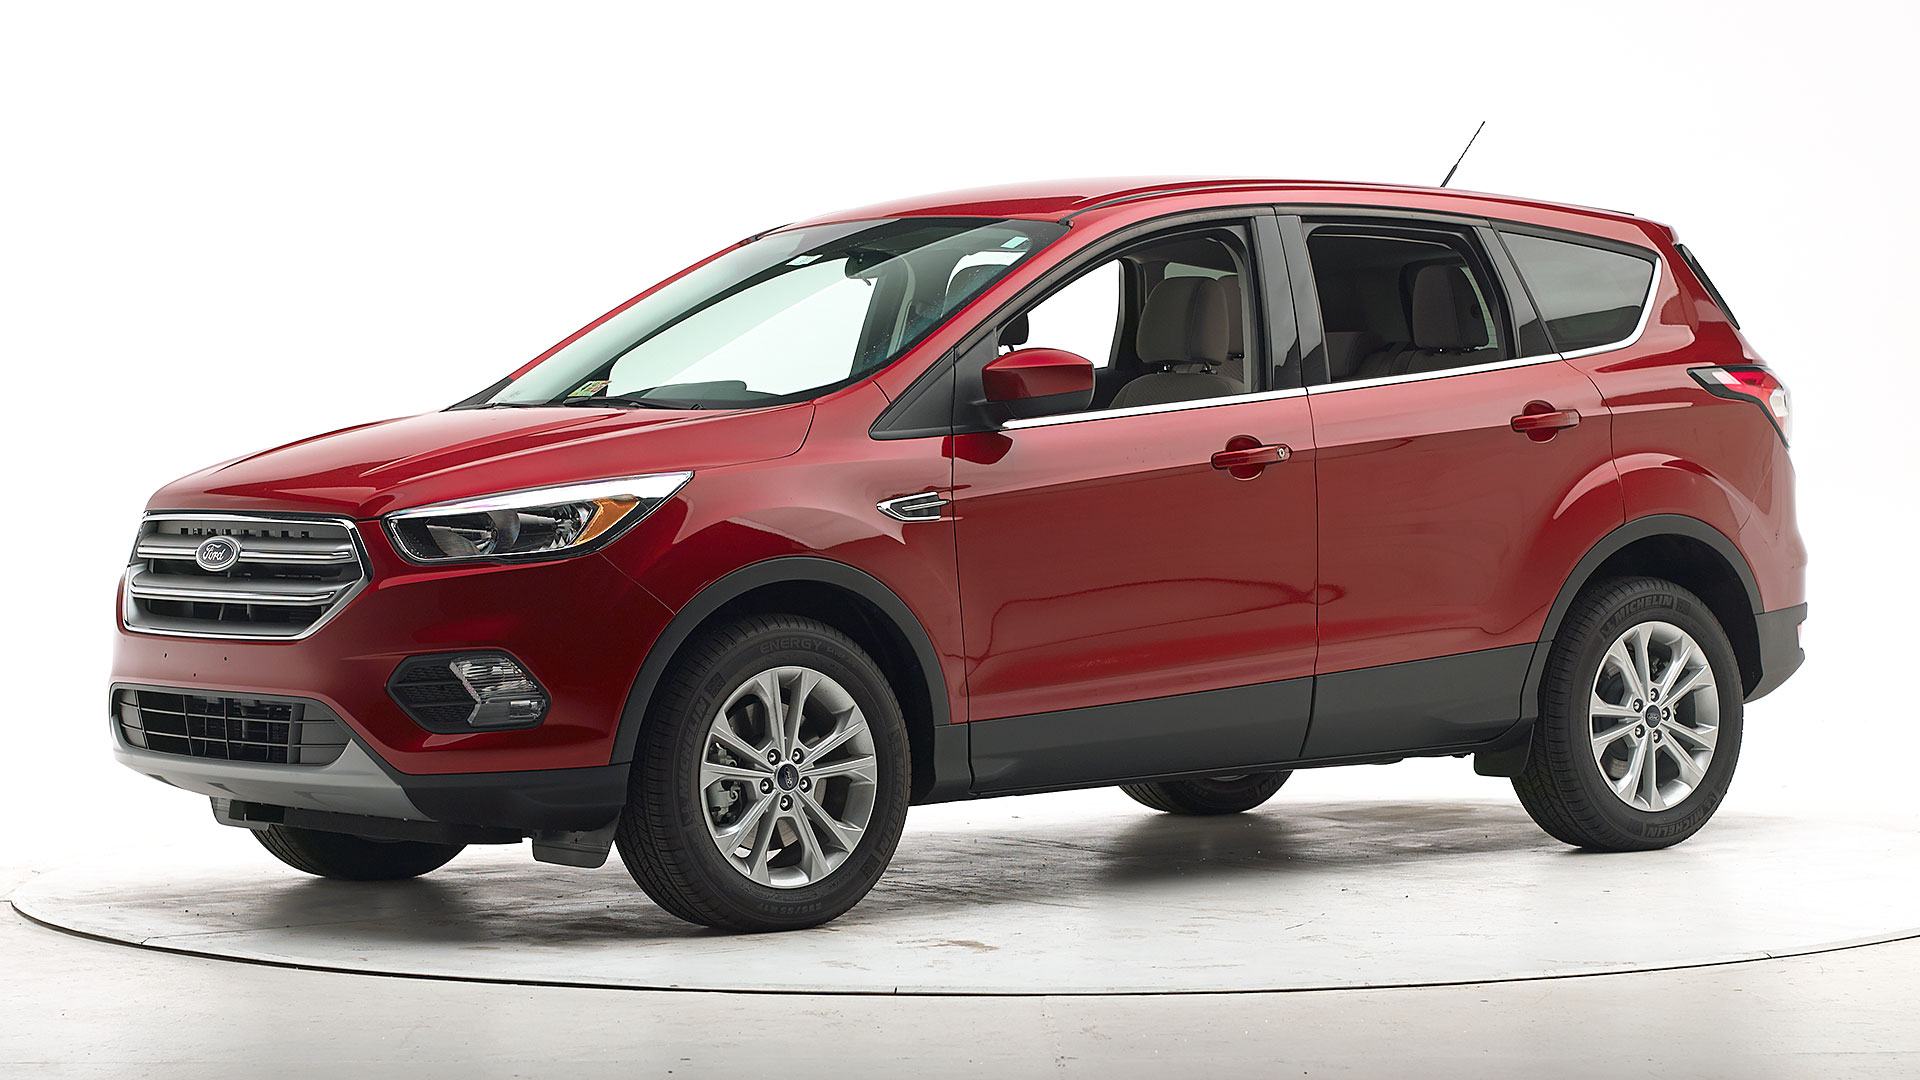 2017 Ford Escape 4-door SUV